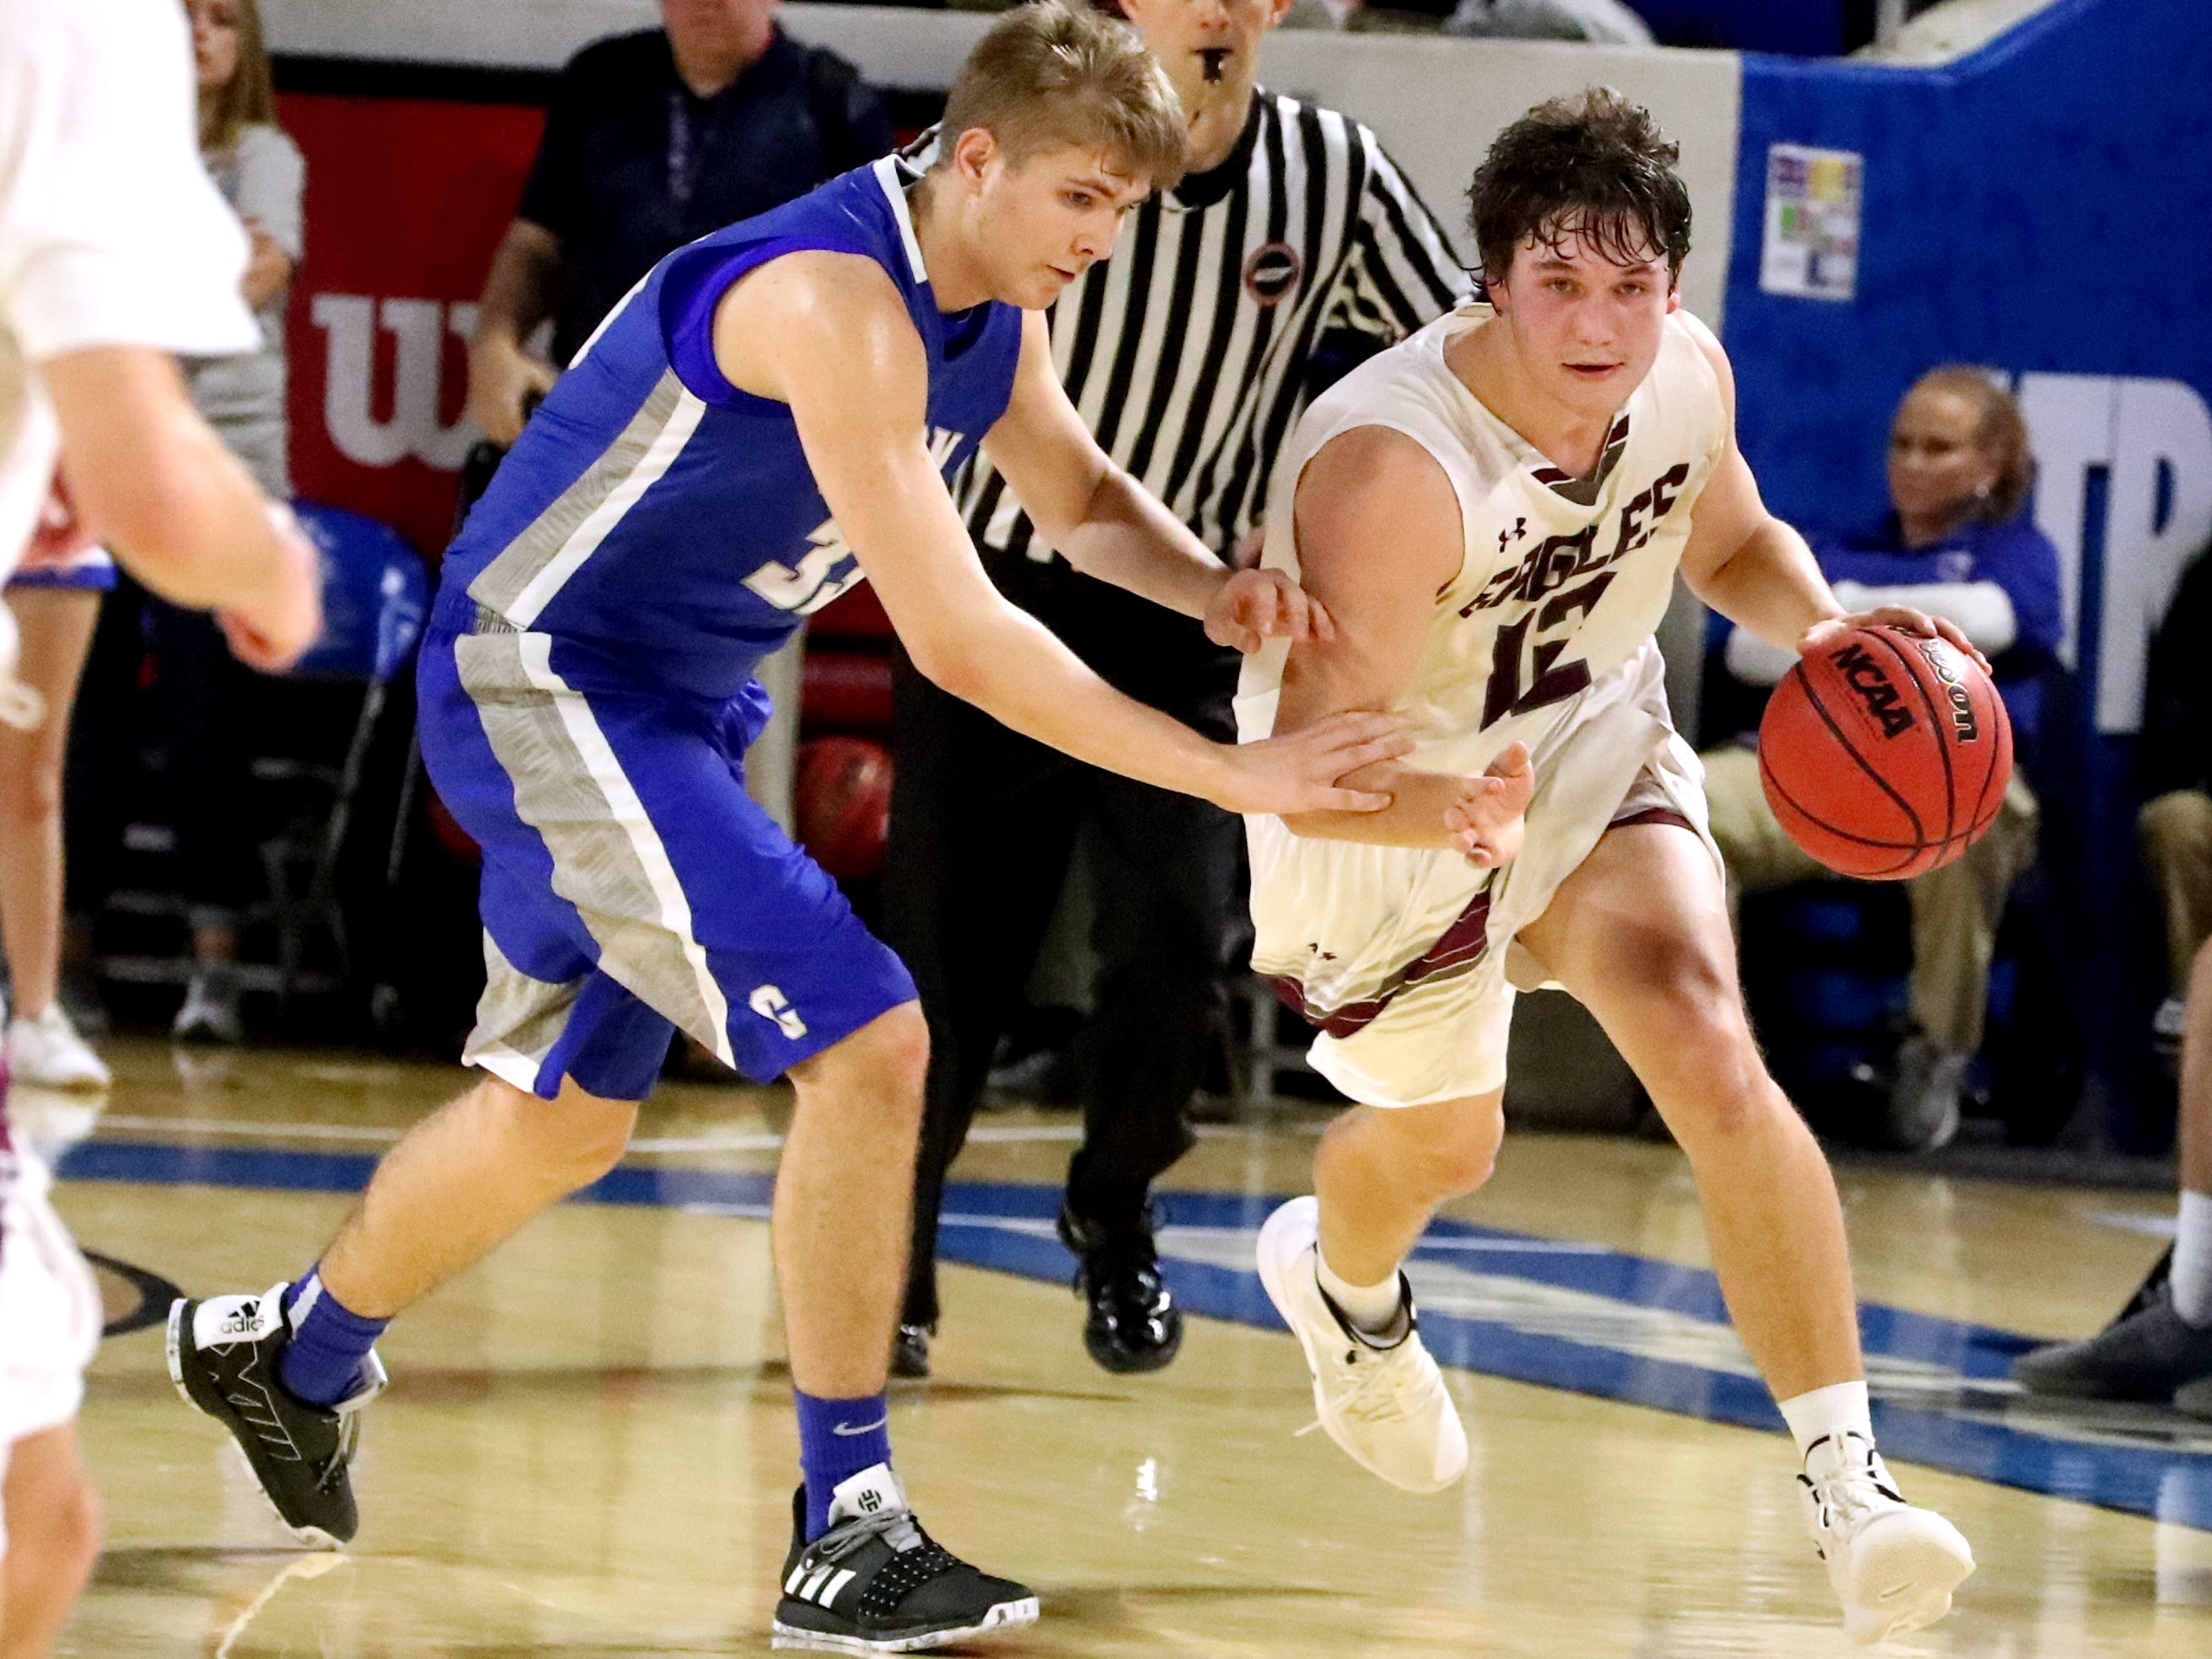 Eagleville's Ethan Cobb (12) brings the ball up the court as Cosby's Riley Galler (33) tries to steal the ball away during the quarterfinal round of the TSSAA Class A Boys State Tournament, on Thursday, March 14, 2019, at Murphy Center in Murfreesboro, Tenn.